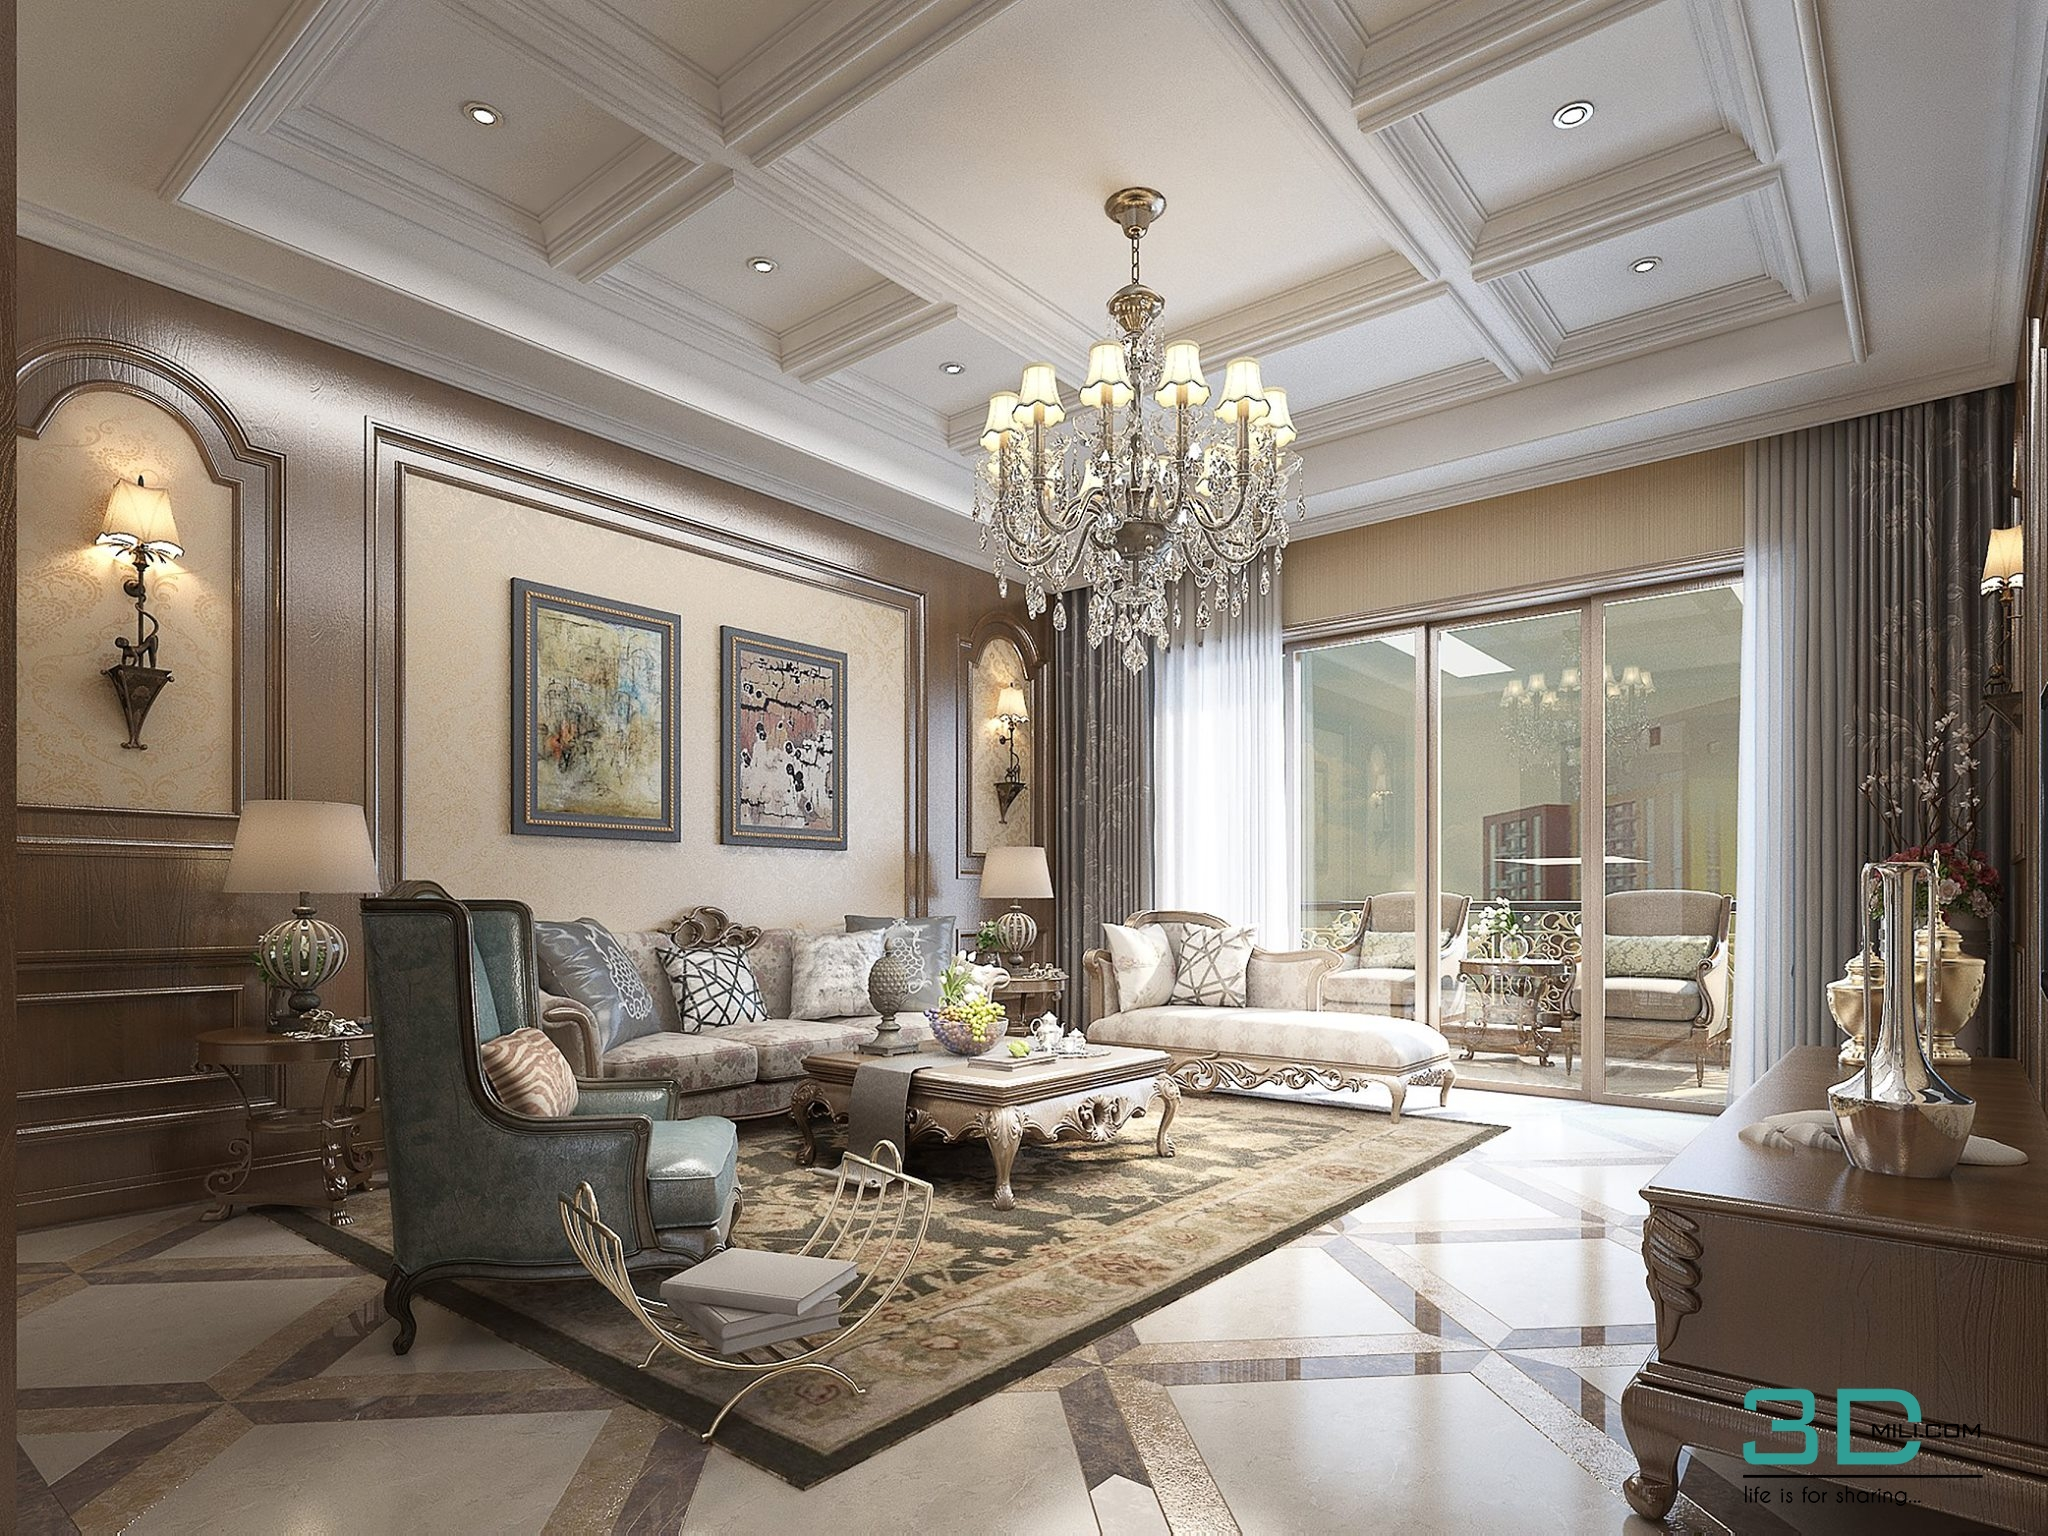 30 Living Room 30 3dsmax File Free Download 3D Mili